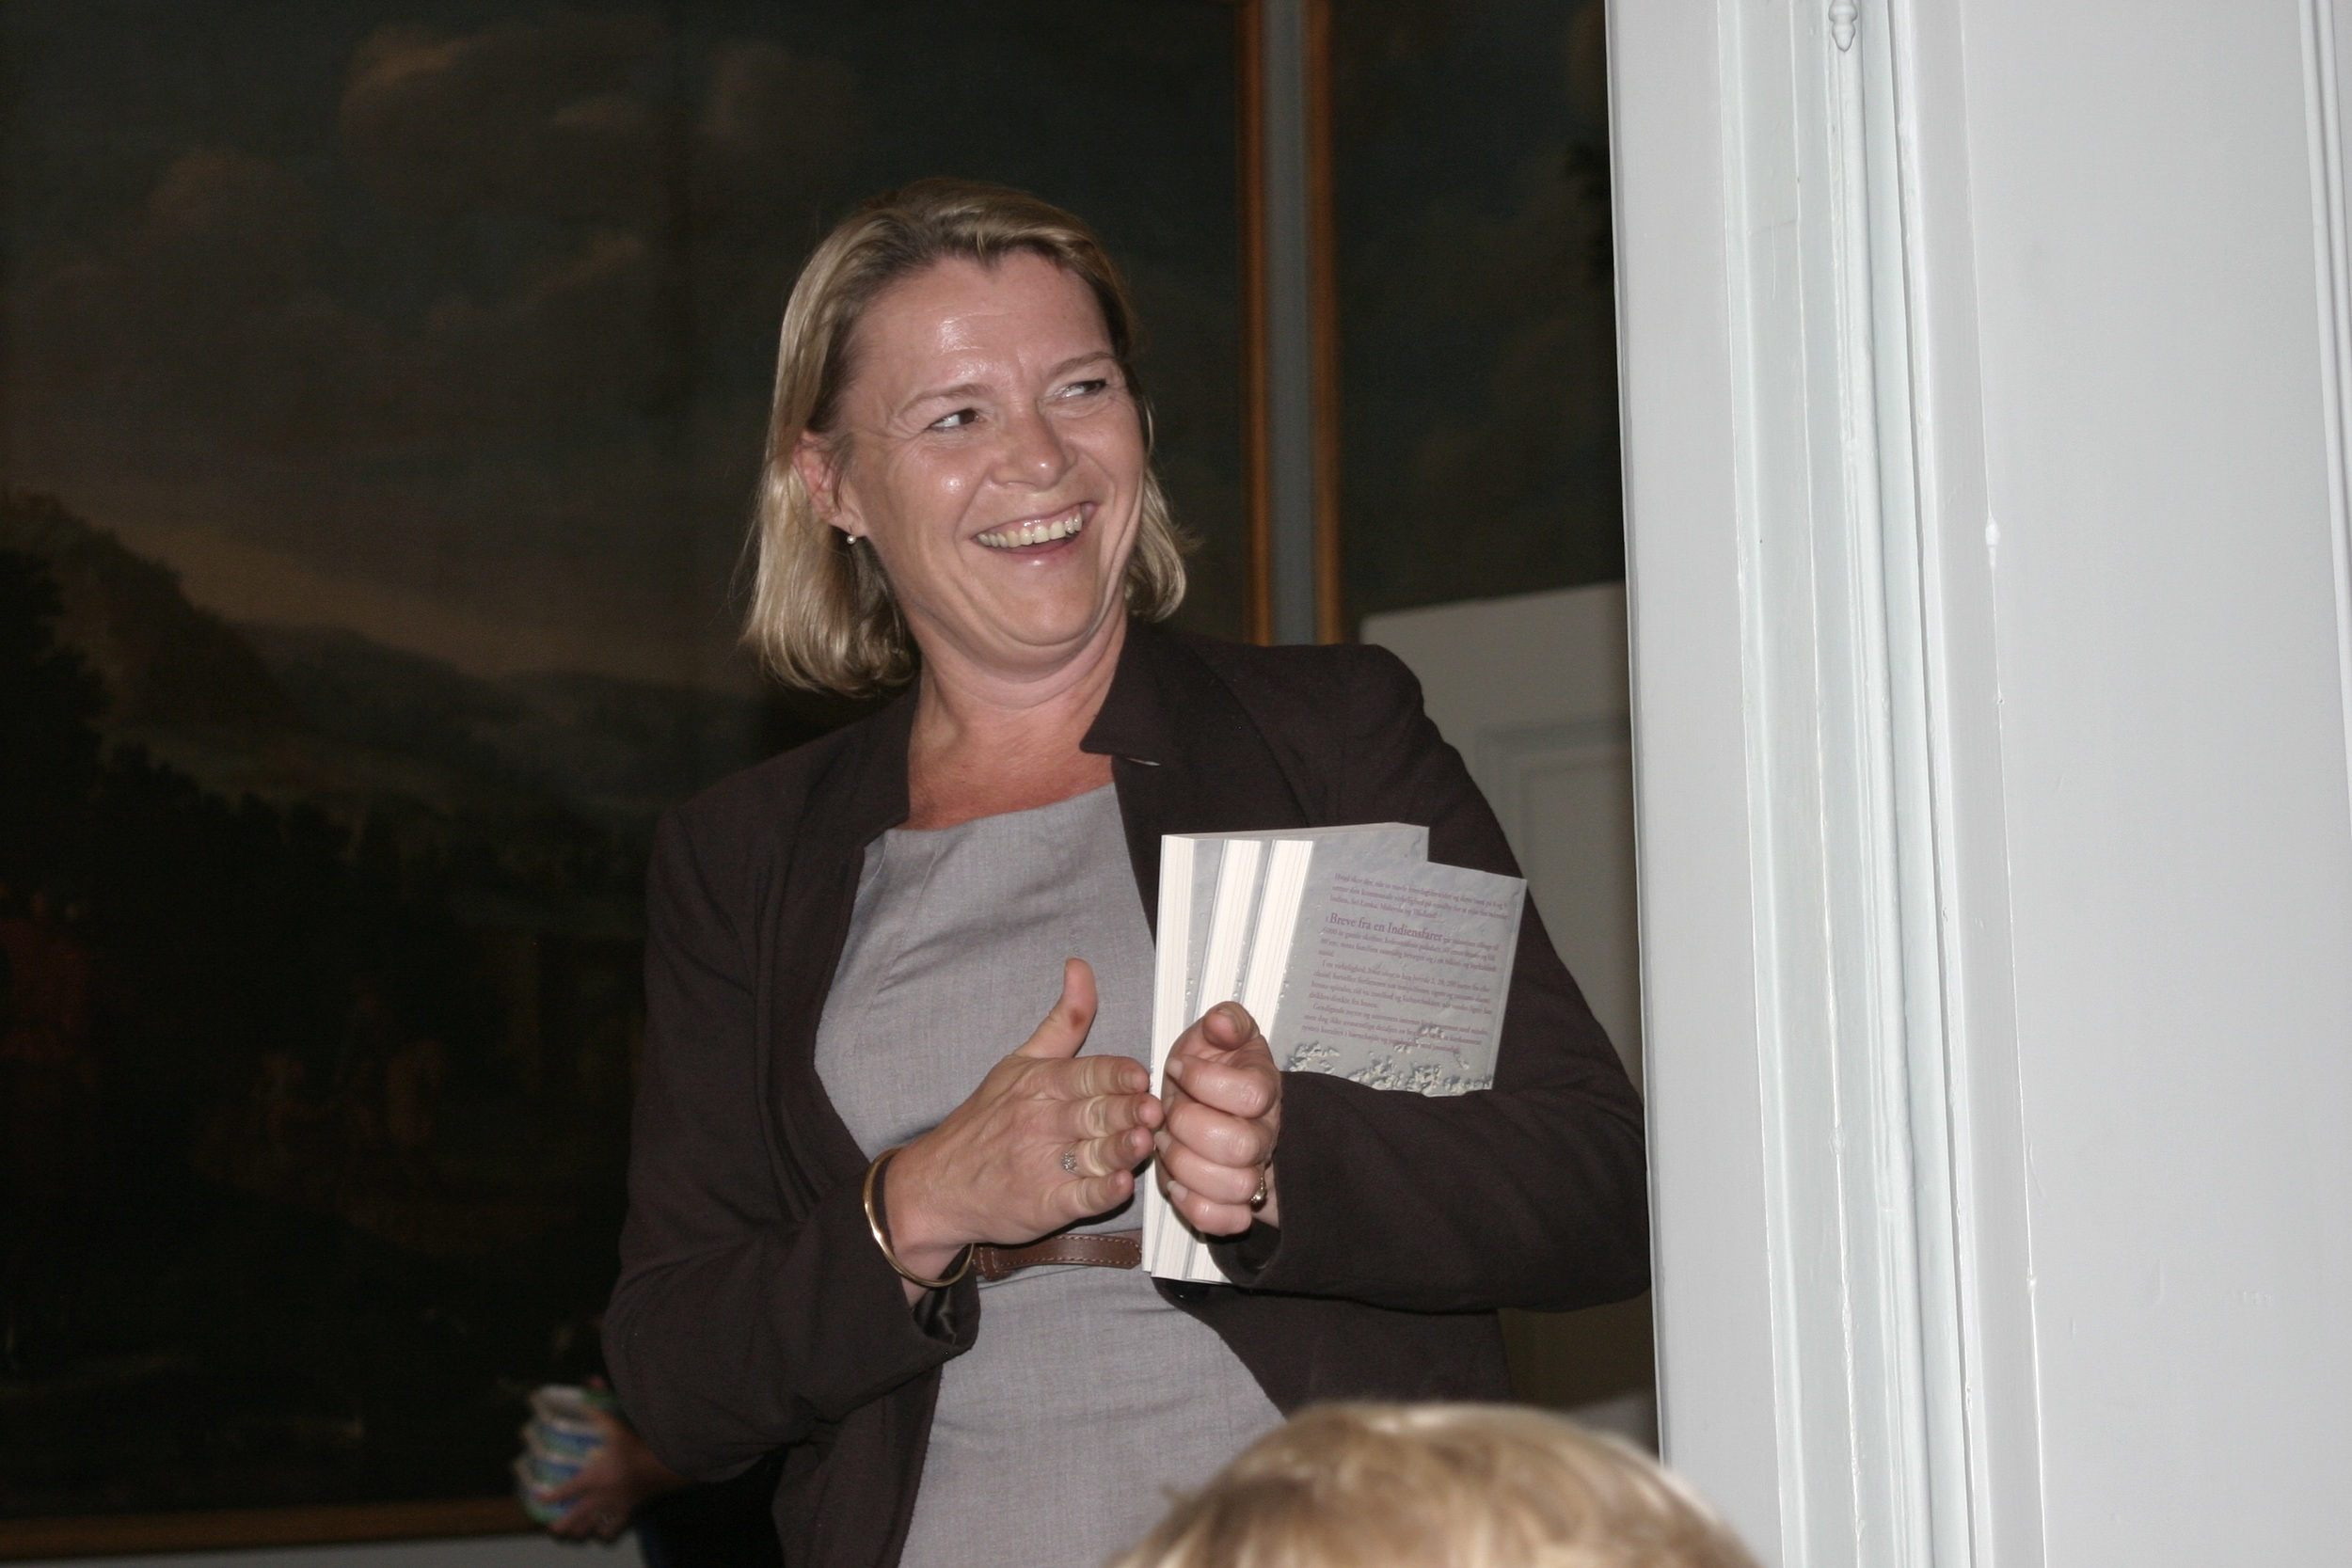 Gitte investerer - thumbs up!